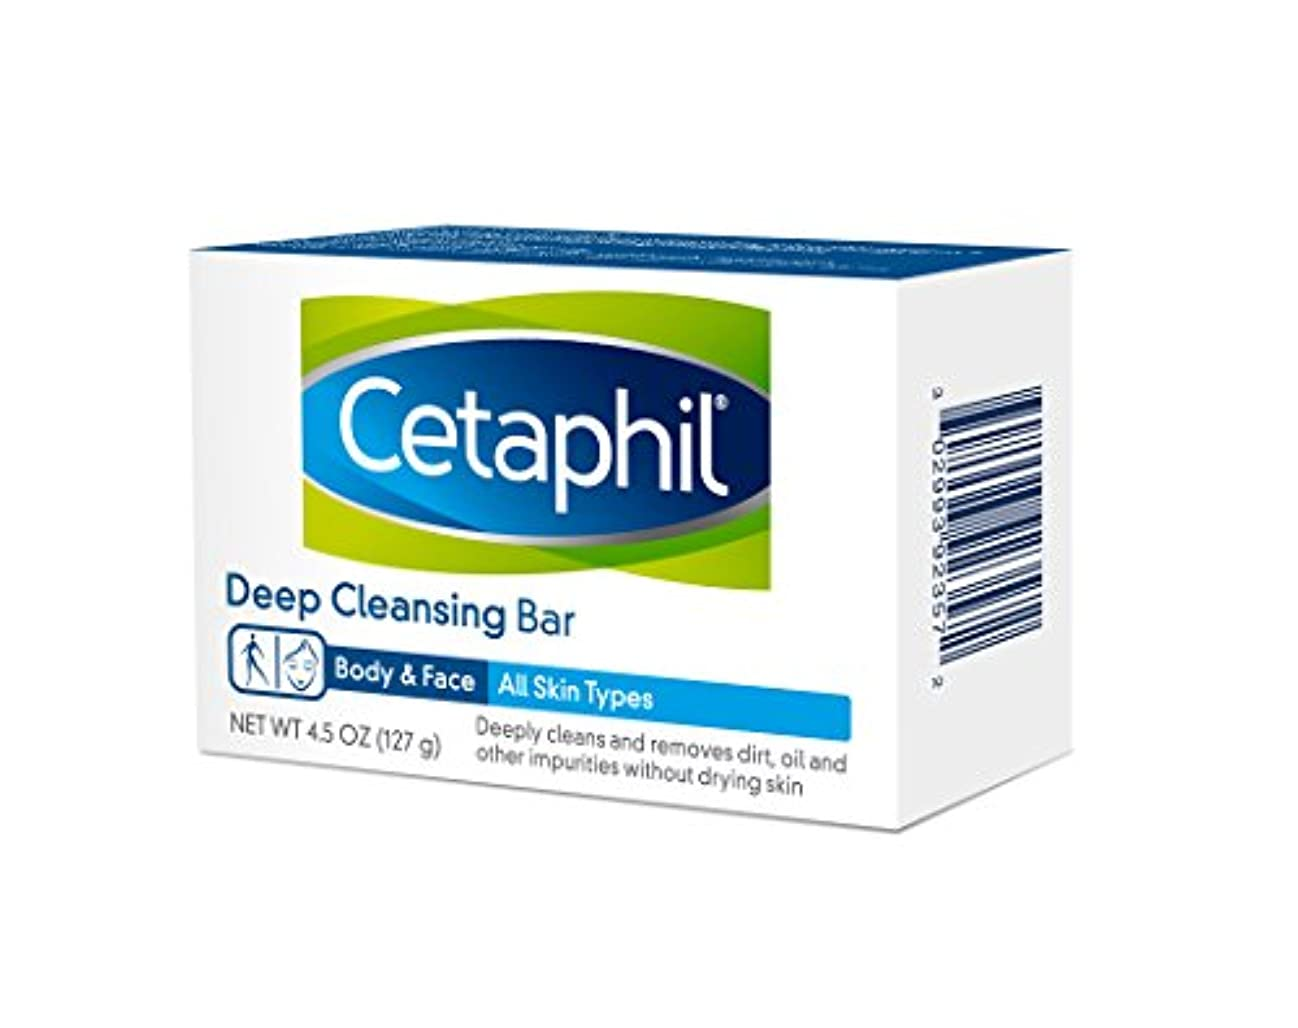 くぼみ援助お香Cetaphil Deep Cleansing Face Body Bar for All Skin Types 127g×6個セット 並行輸入品